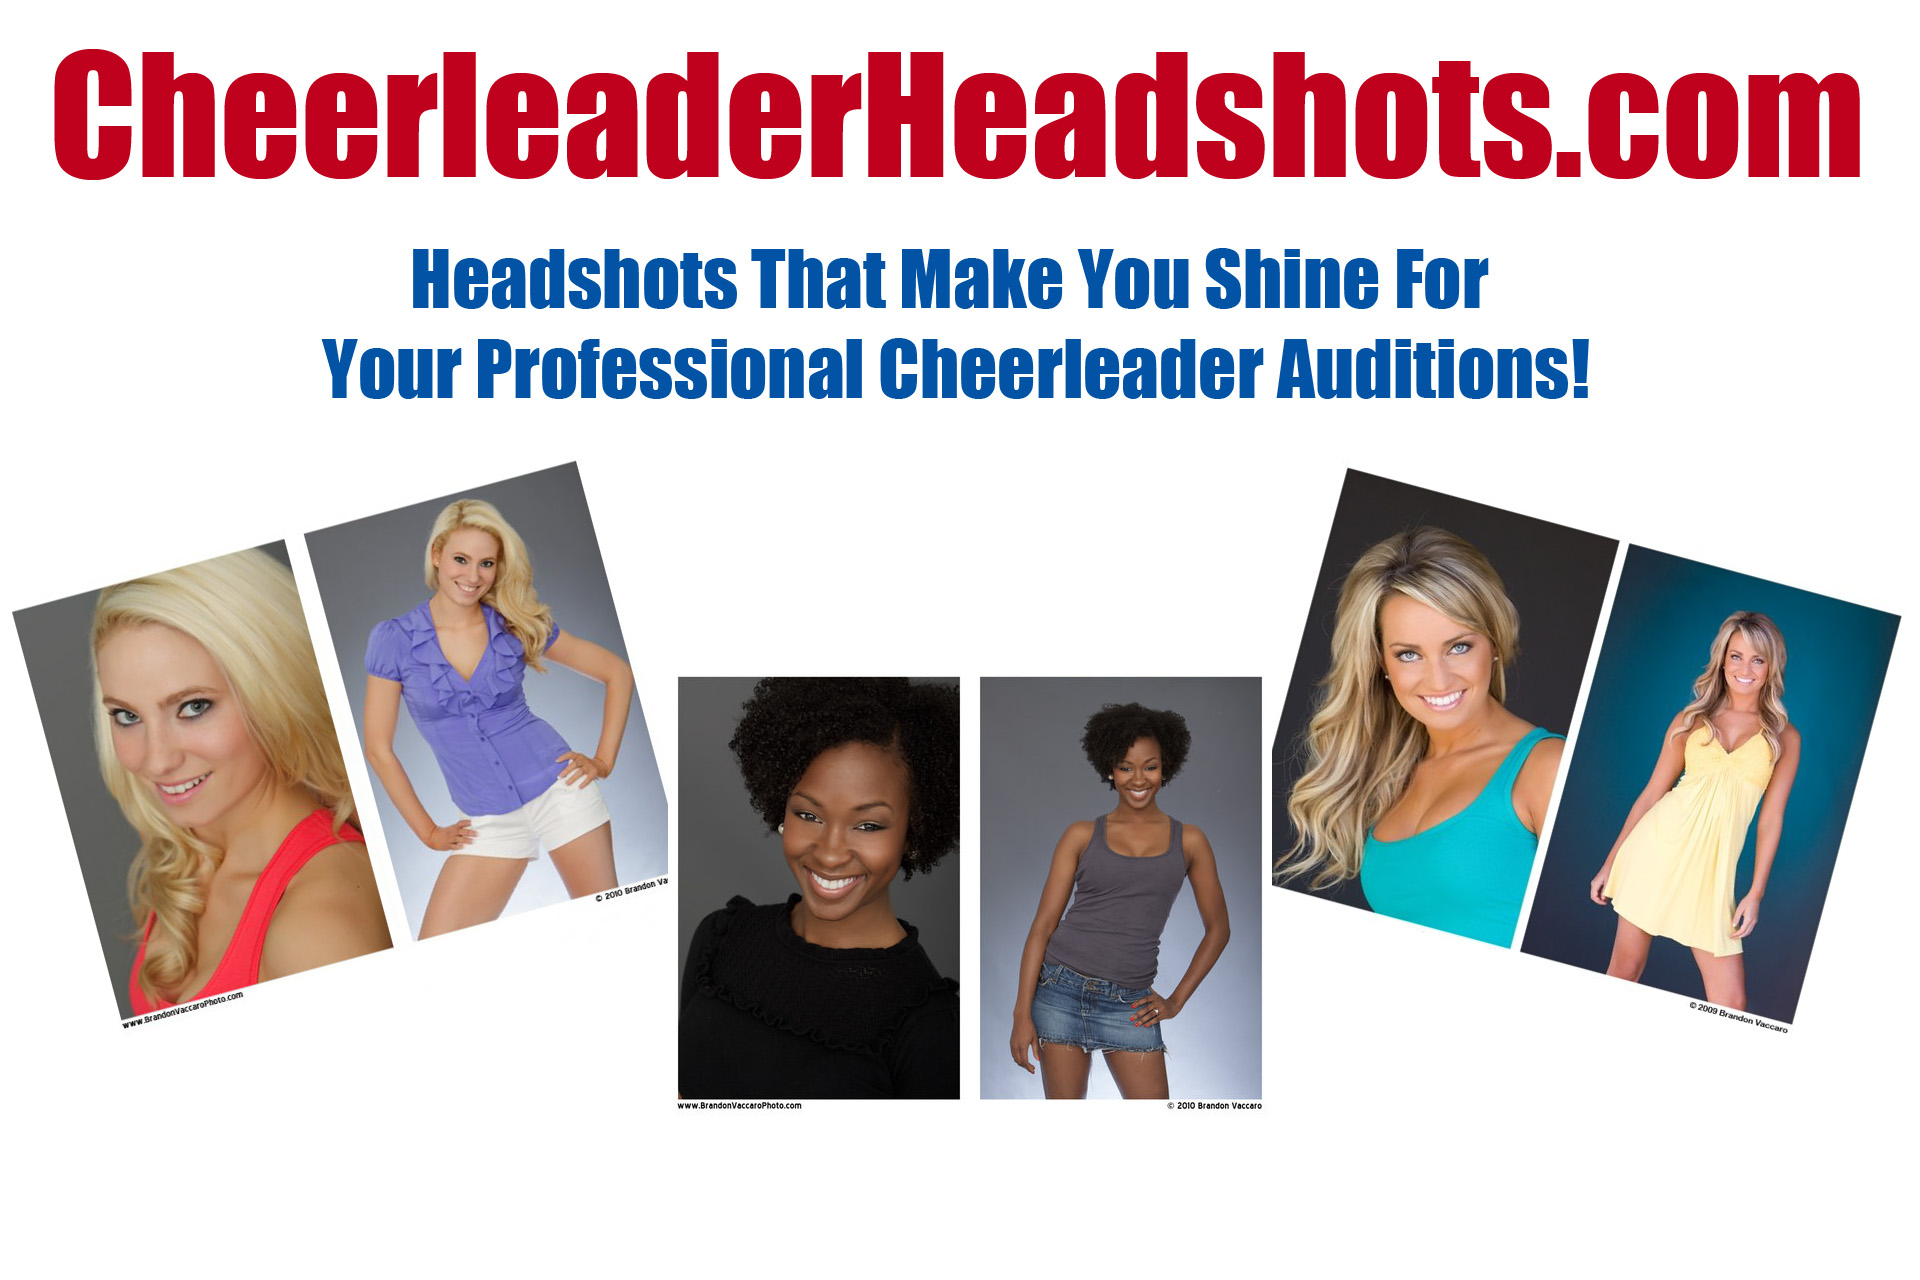 Cheerleaderheadshots2.jpg